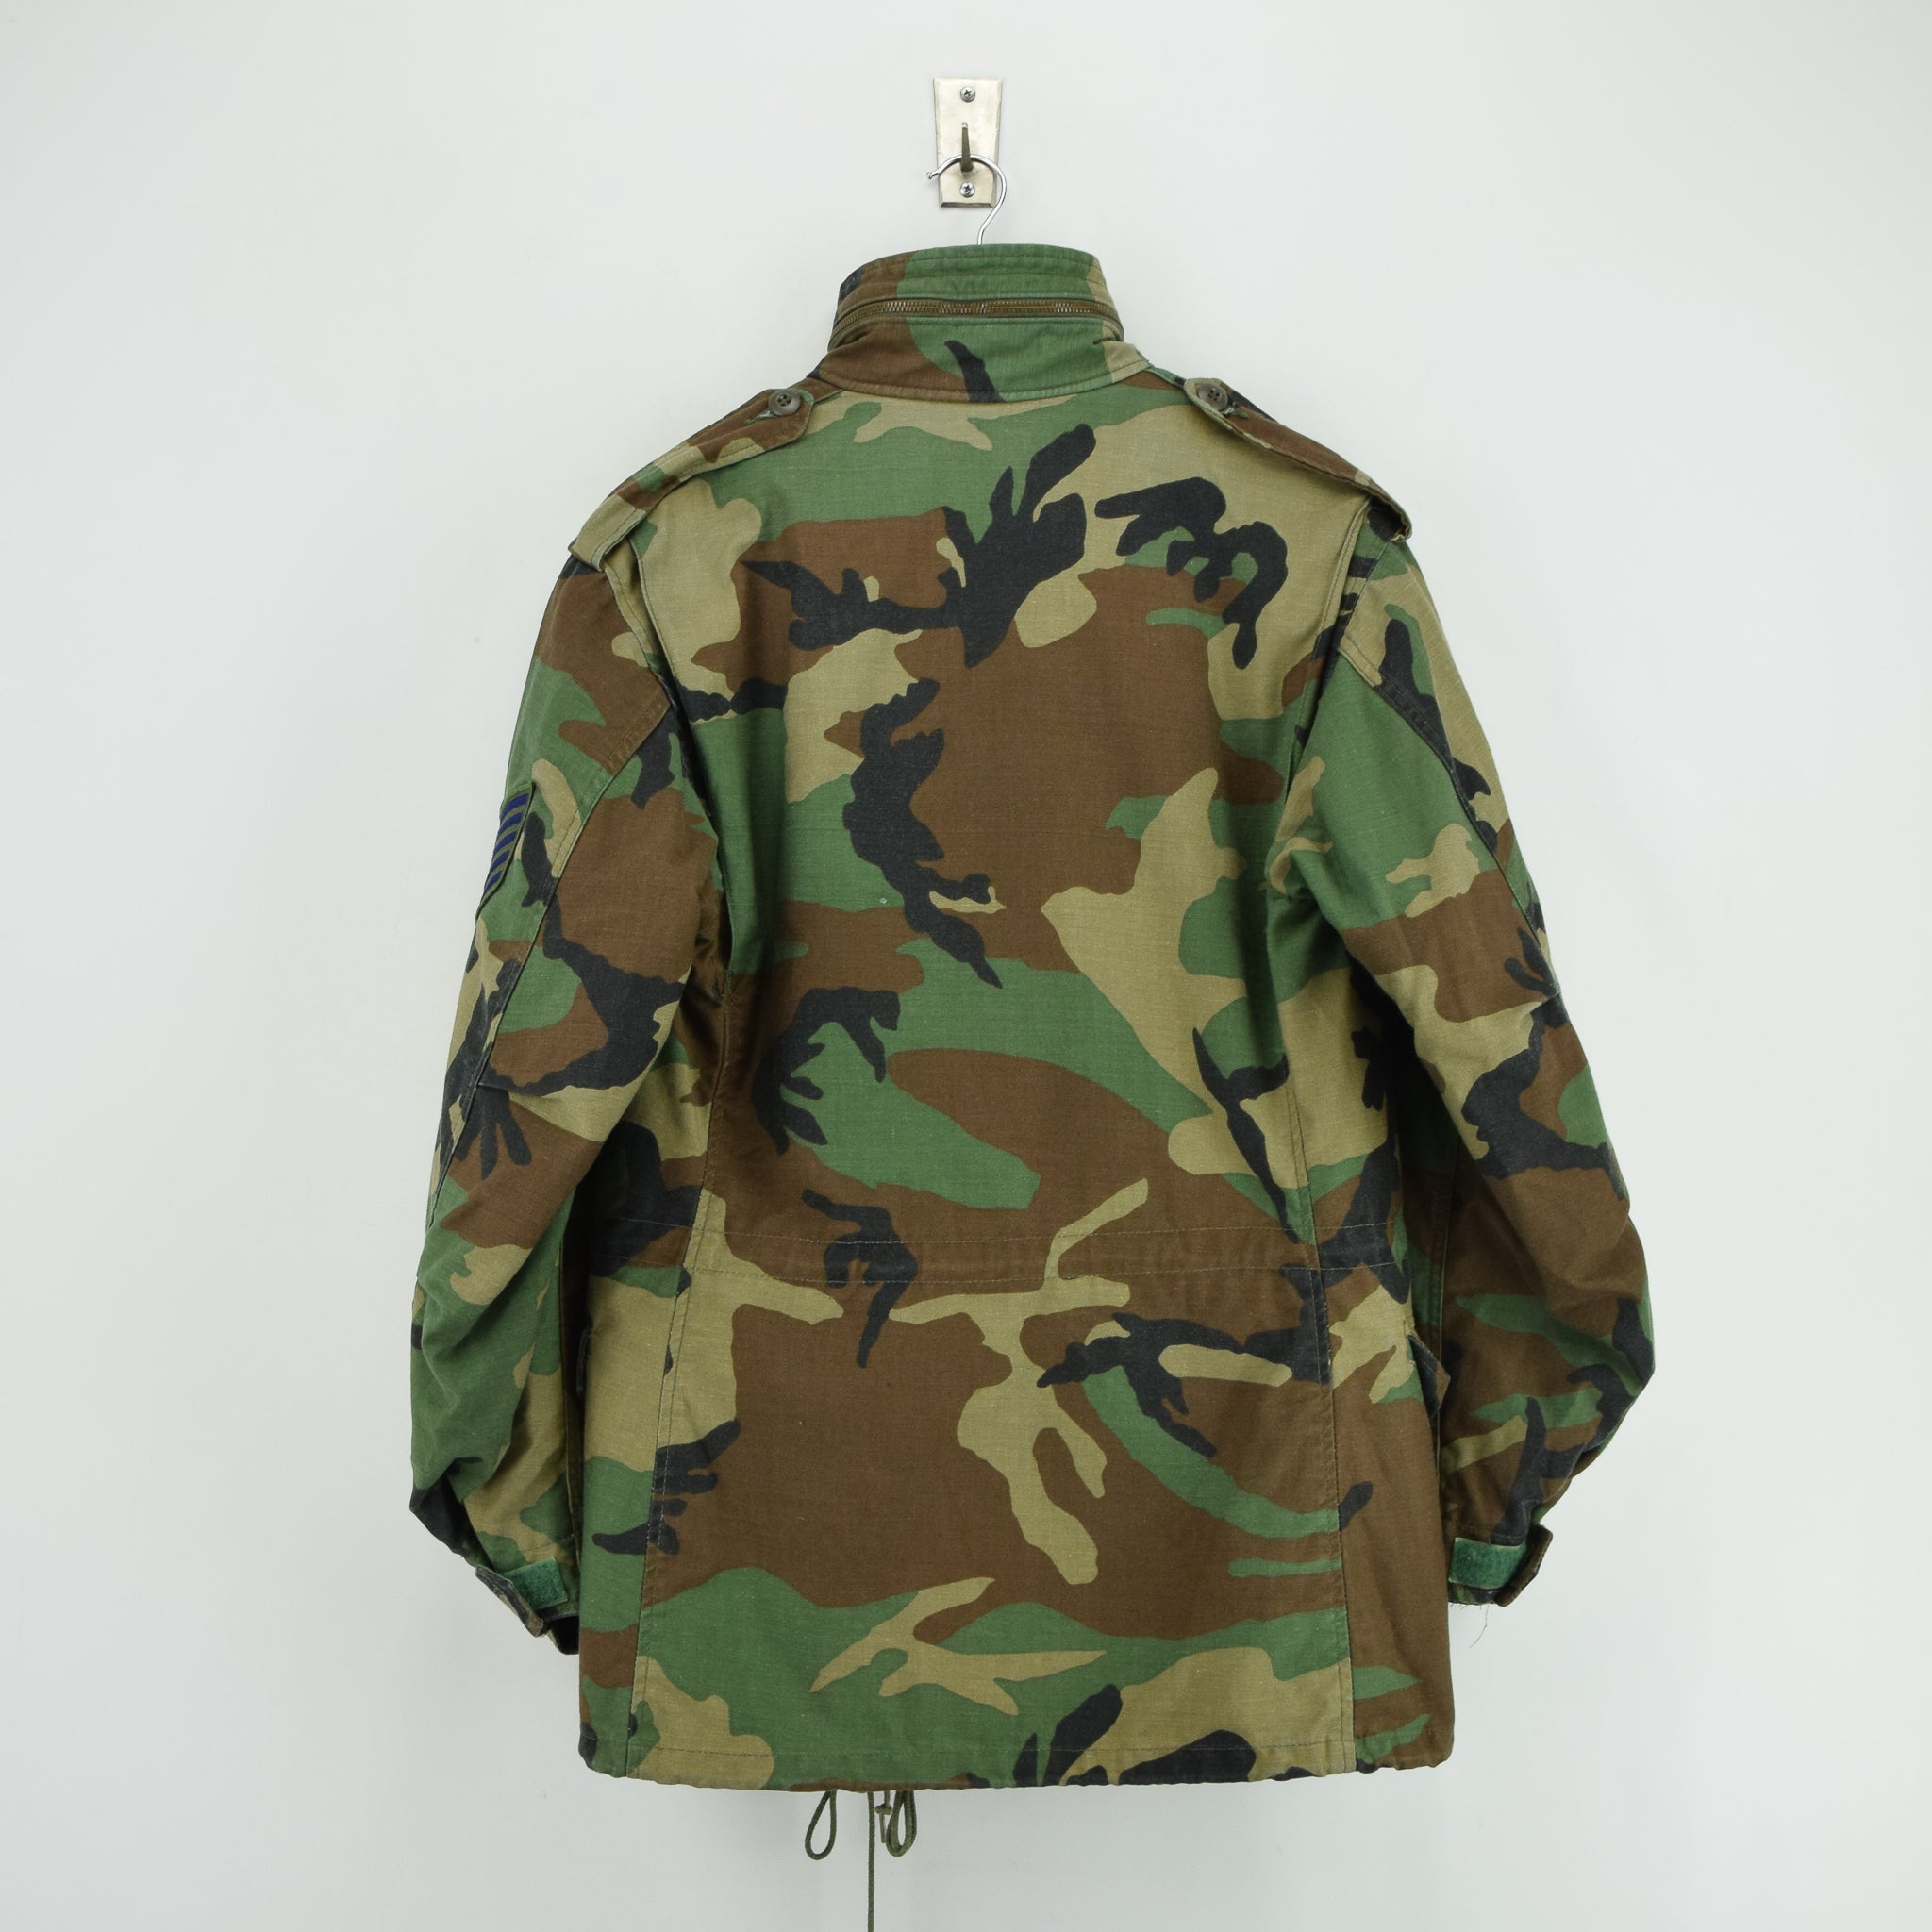 Vintage 80s M-65 Woodland Camouflage Field Coat USAF Cotton Military Jacket S back